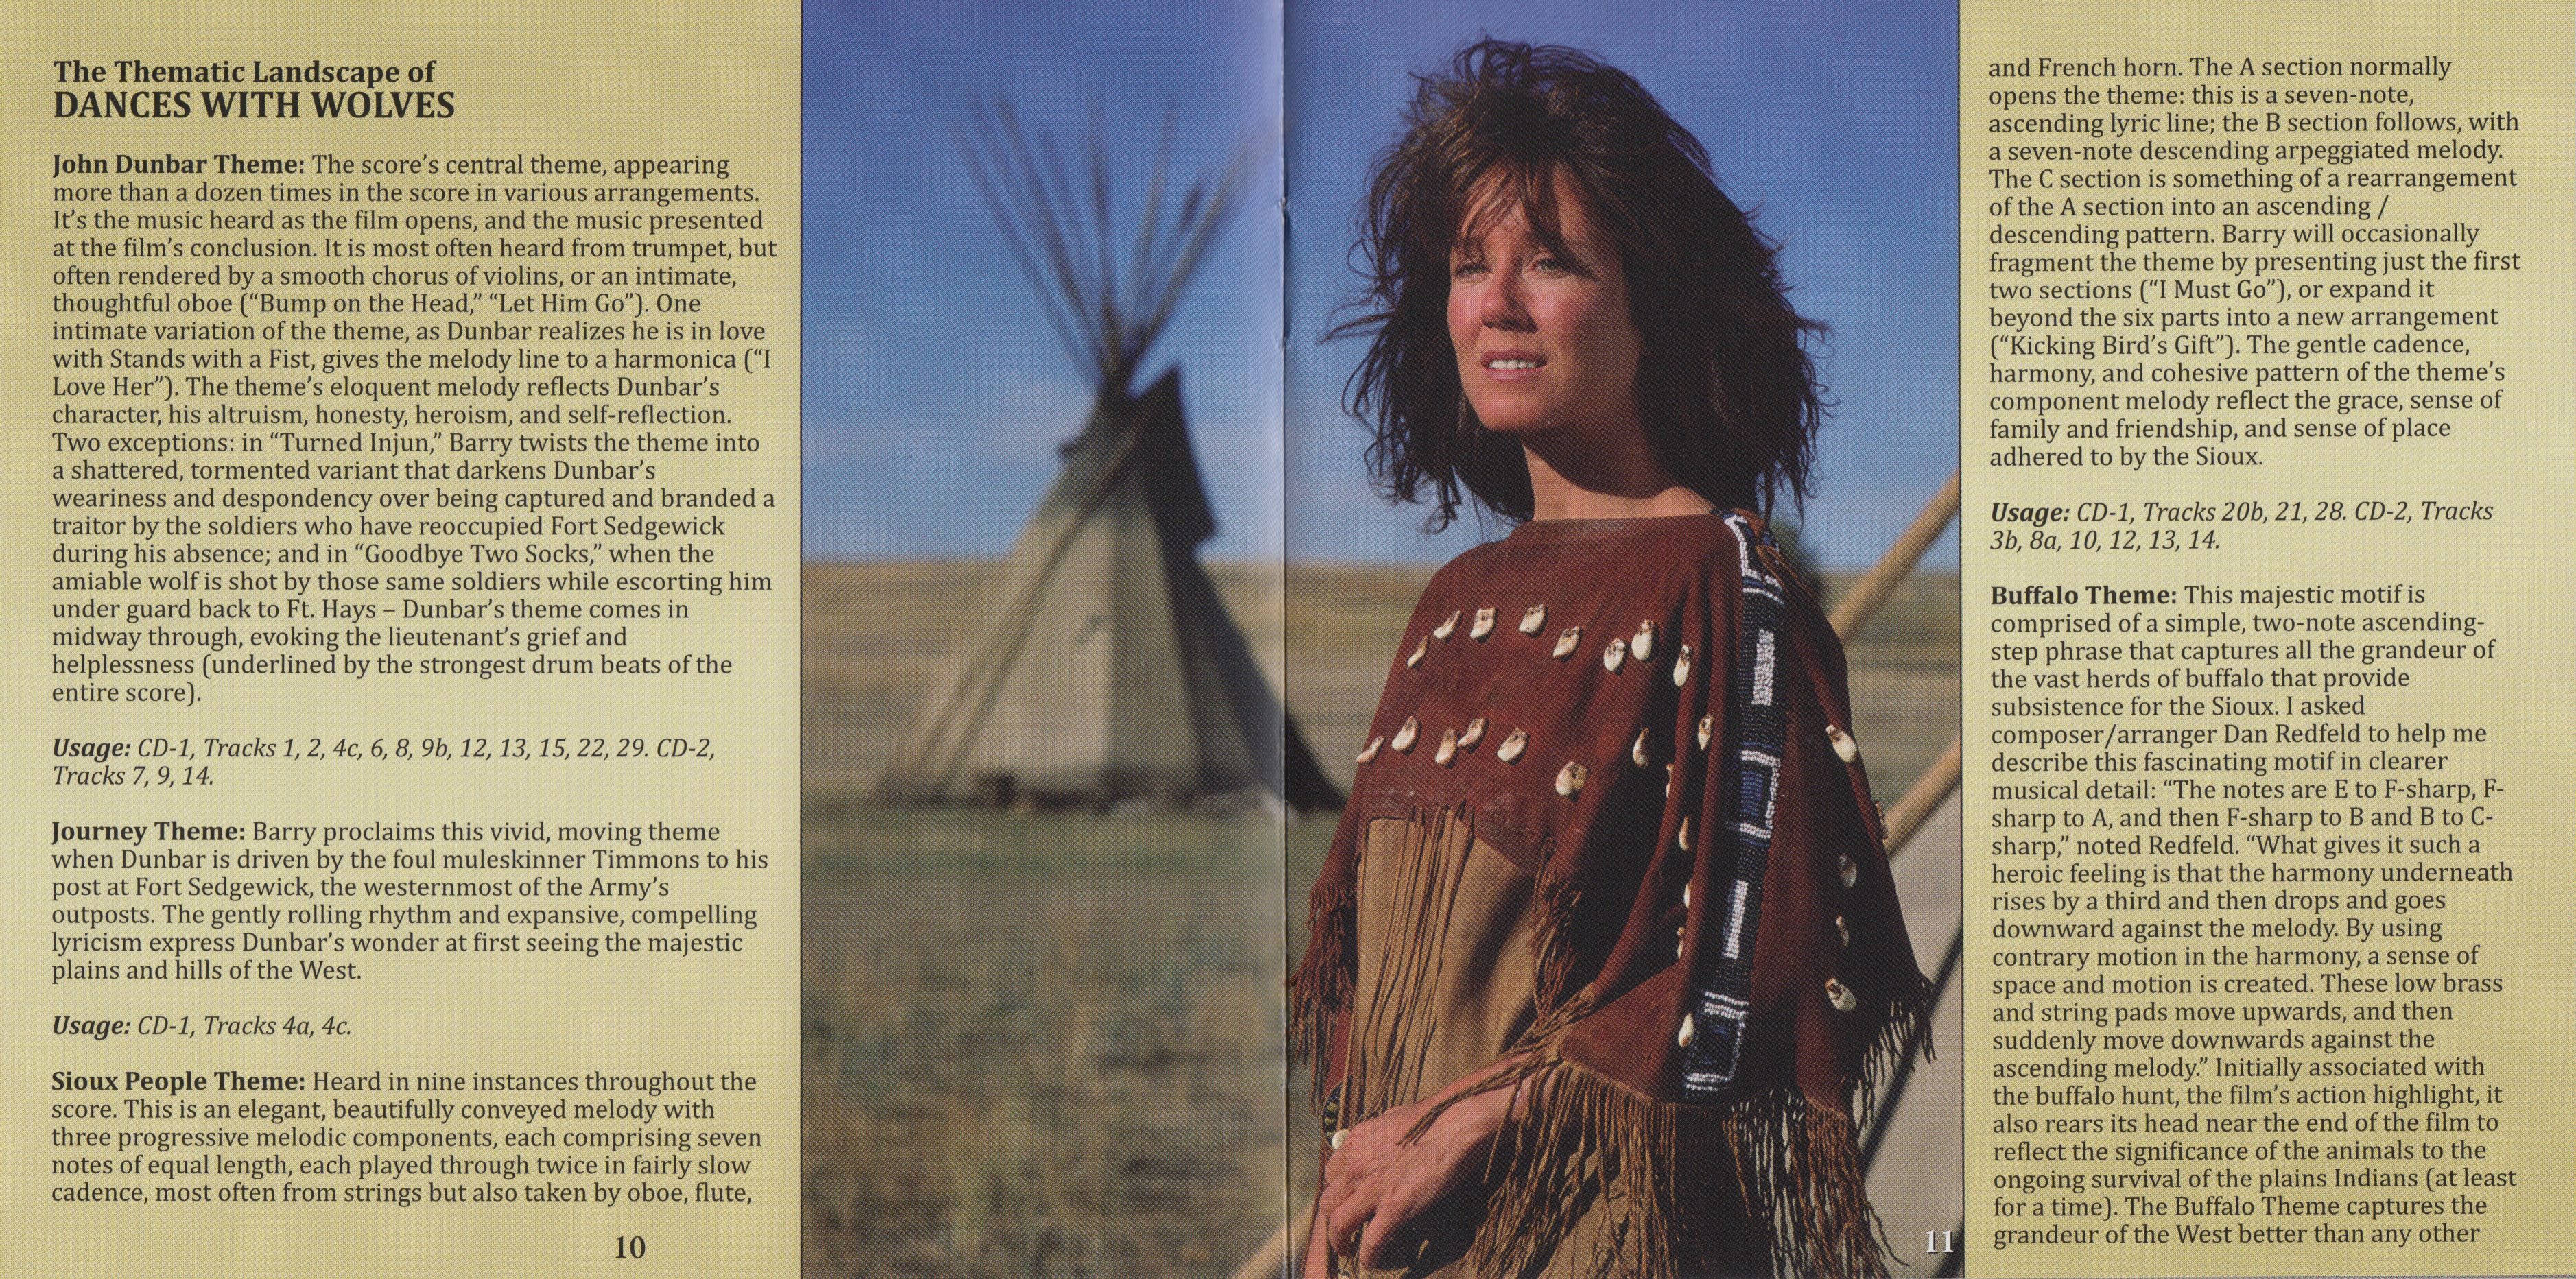 dances with wolves review essay Dances with wolves is a movie that clearly shows the moral and political dilemmas that existed in those times and it also represents that fairly savage policy that the united states had against indians and those that sided with the same.